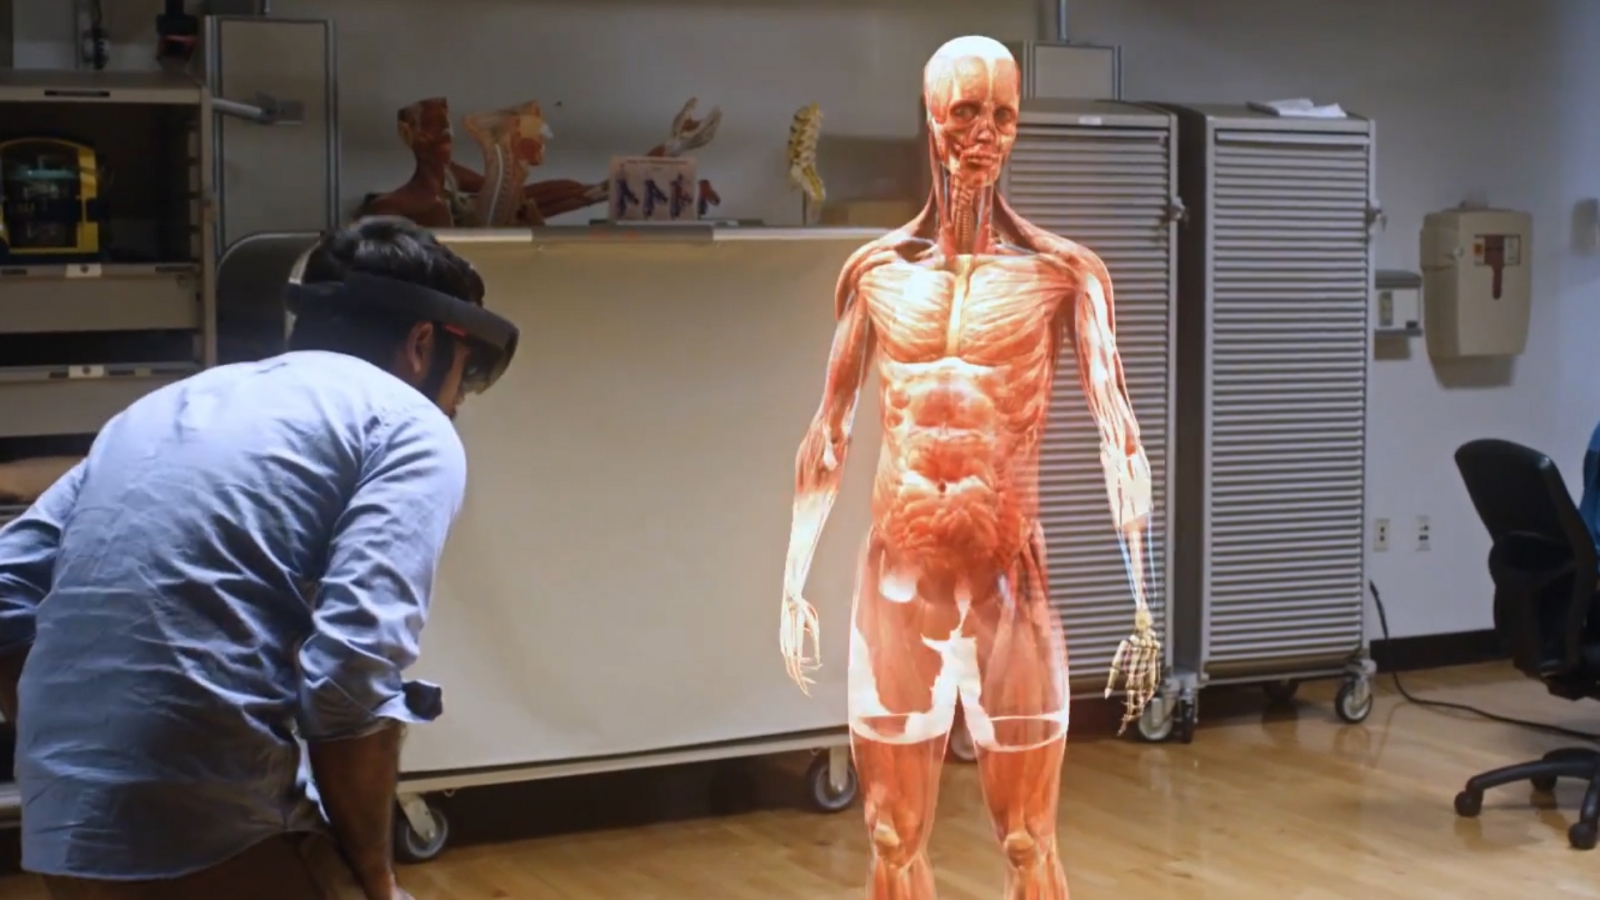 Advancing Medical Education through Medical Animation and Technology